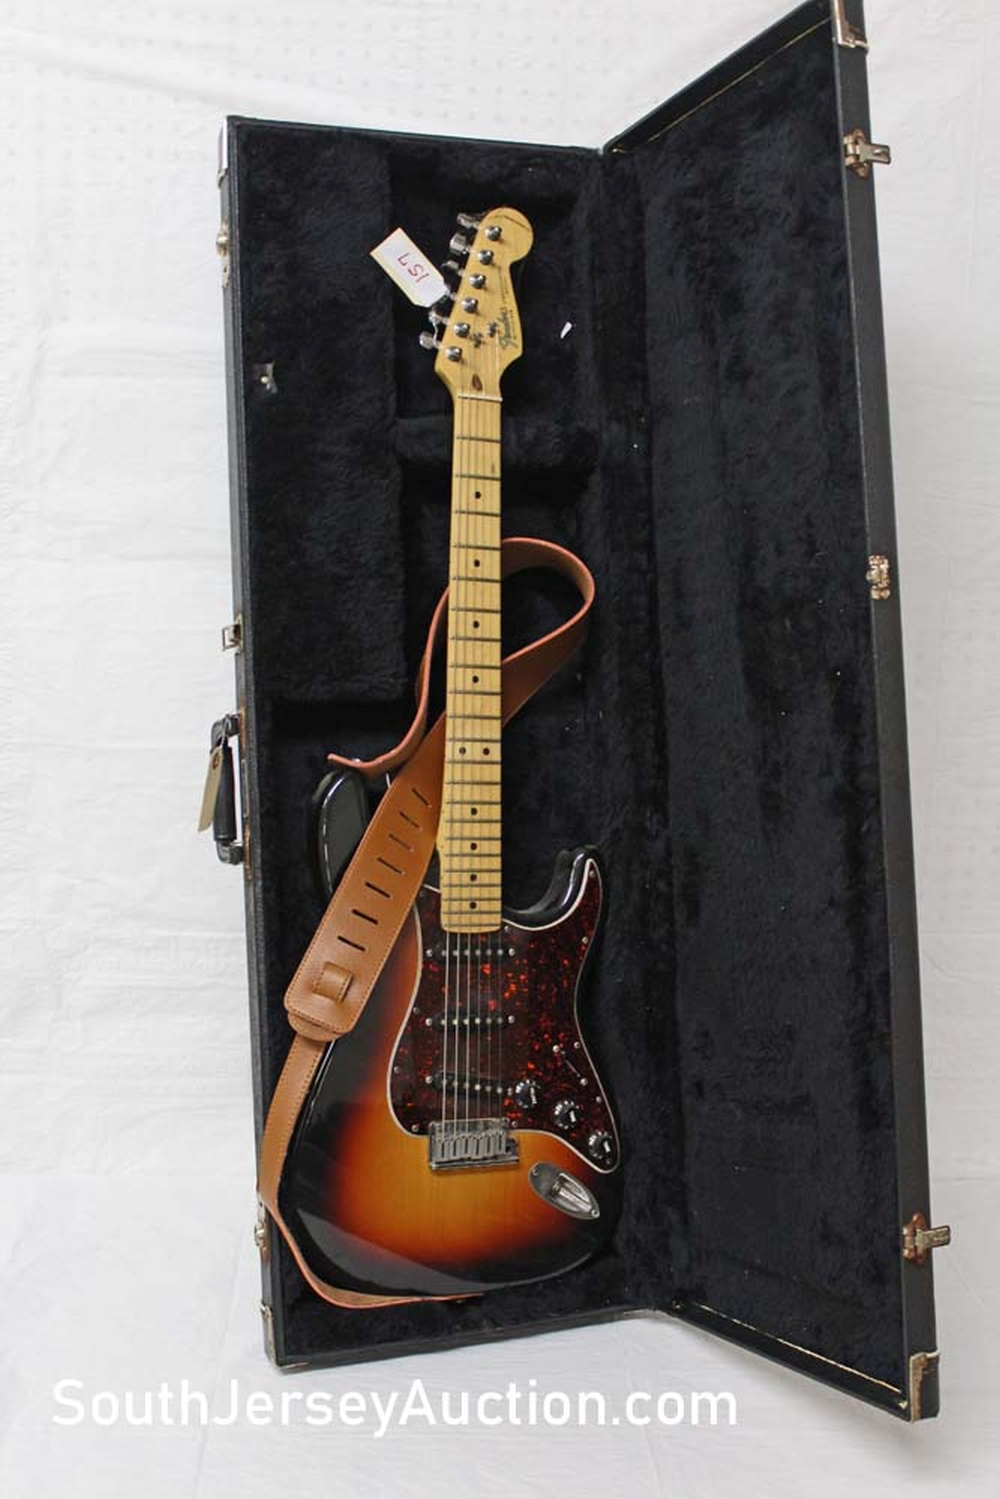 1993 Fender Stratocaster, made in the US, Tobacco Sunburst, tortoise shell pick guard, maple neck, single single single pickup, s/n n3153649, with hard shell case, very good condition